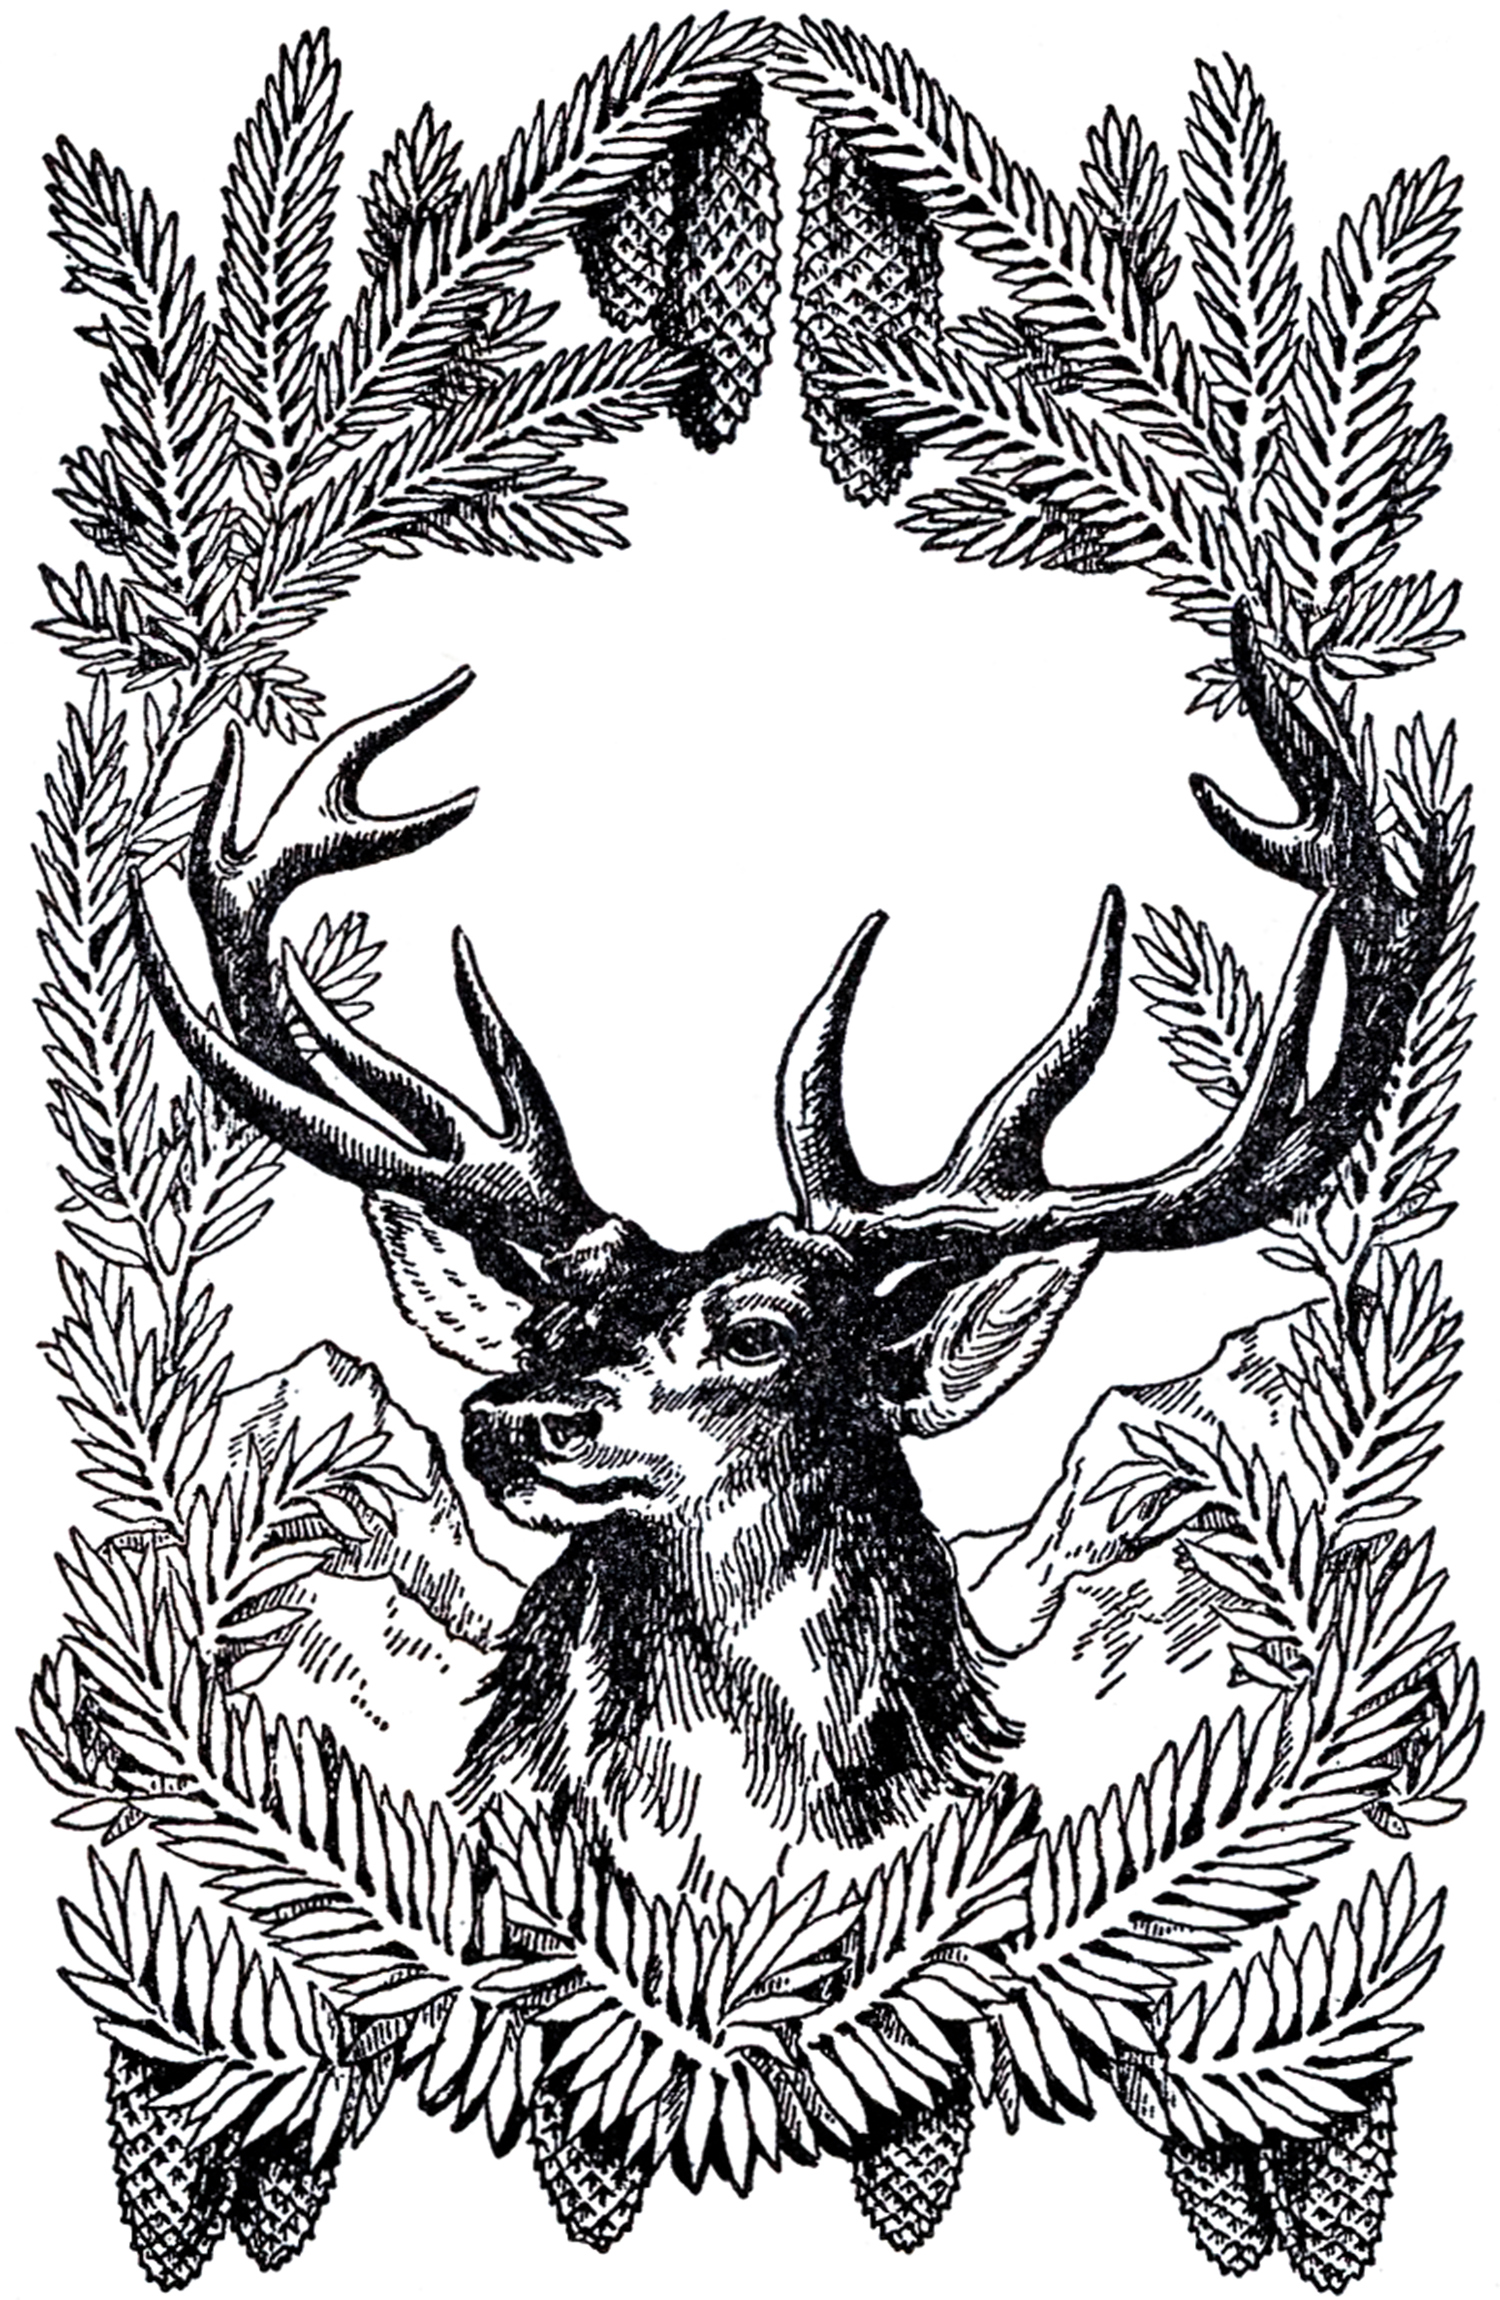 Vintage reindeer head clipart jpg freeuse download 12+ Deer and Antlers Clipart! - The Graphics Fairy jpg freeuse download